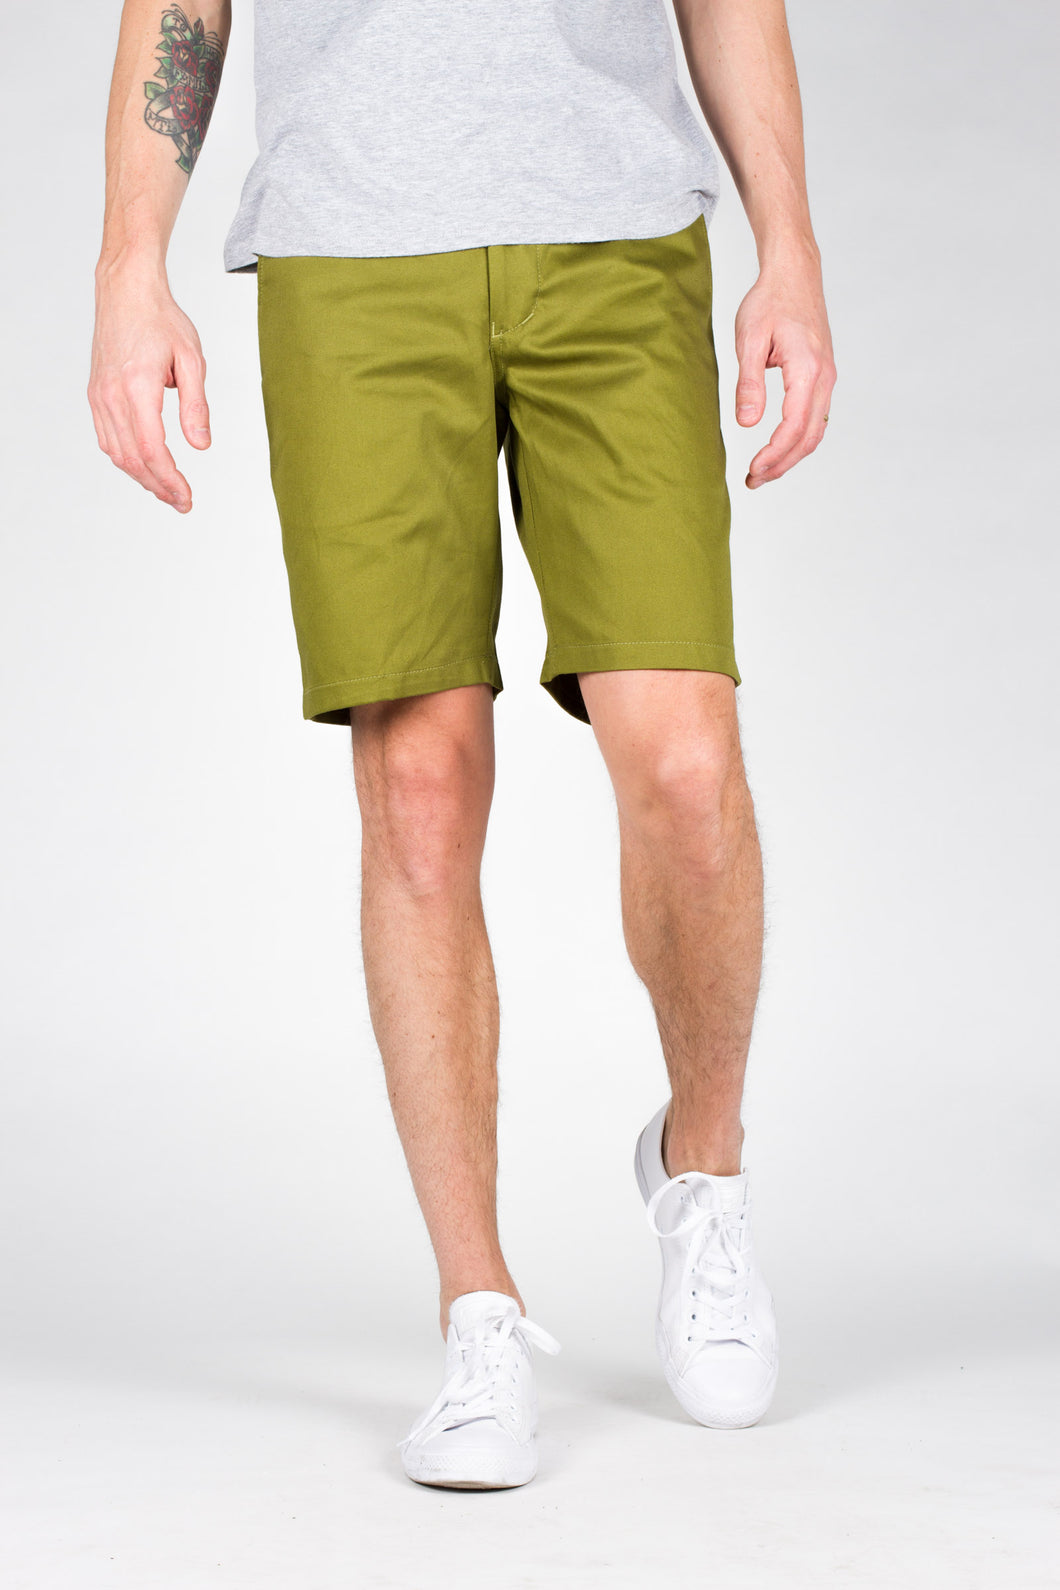 Keenan Lightweight Short - Green